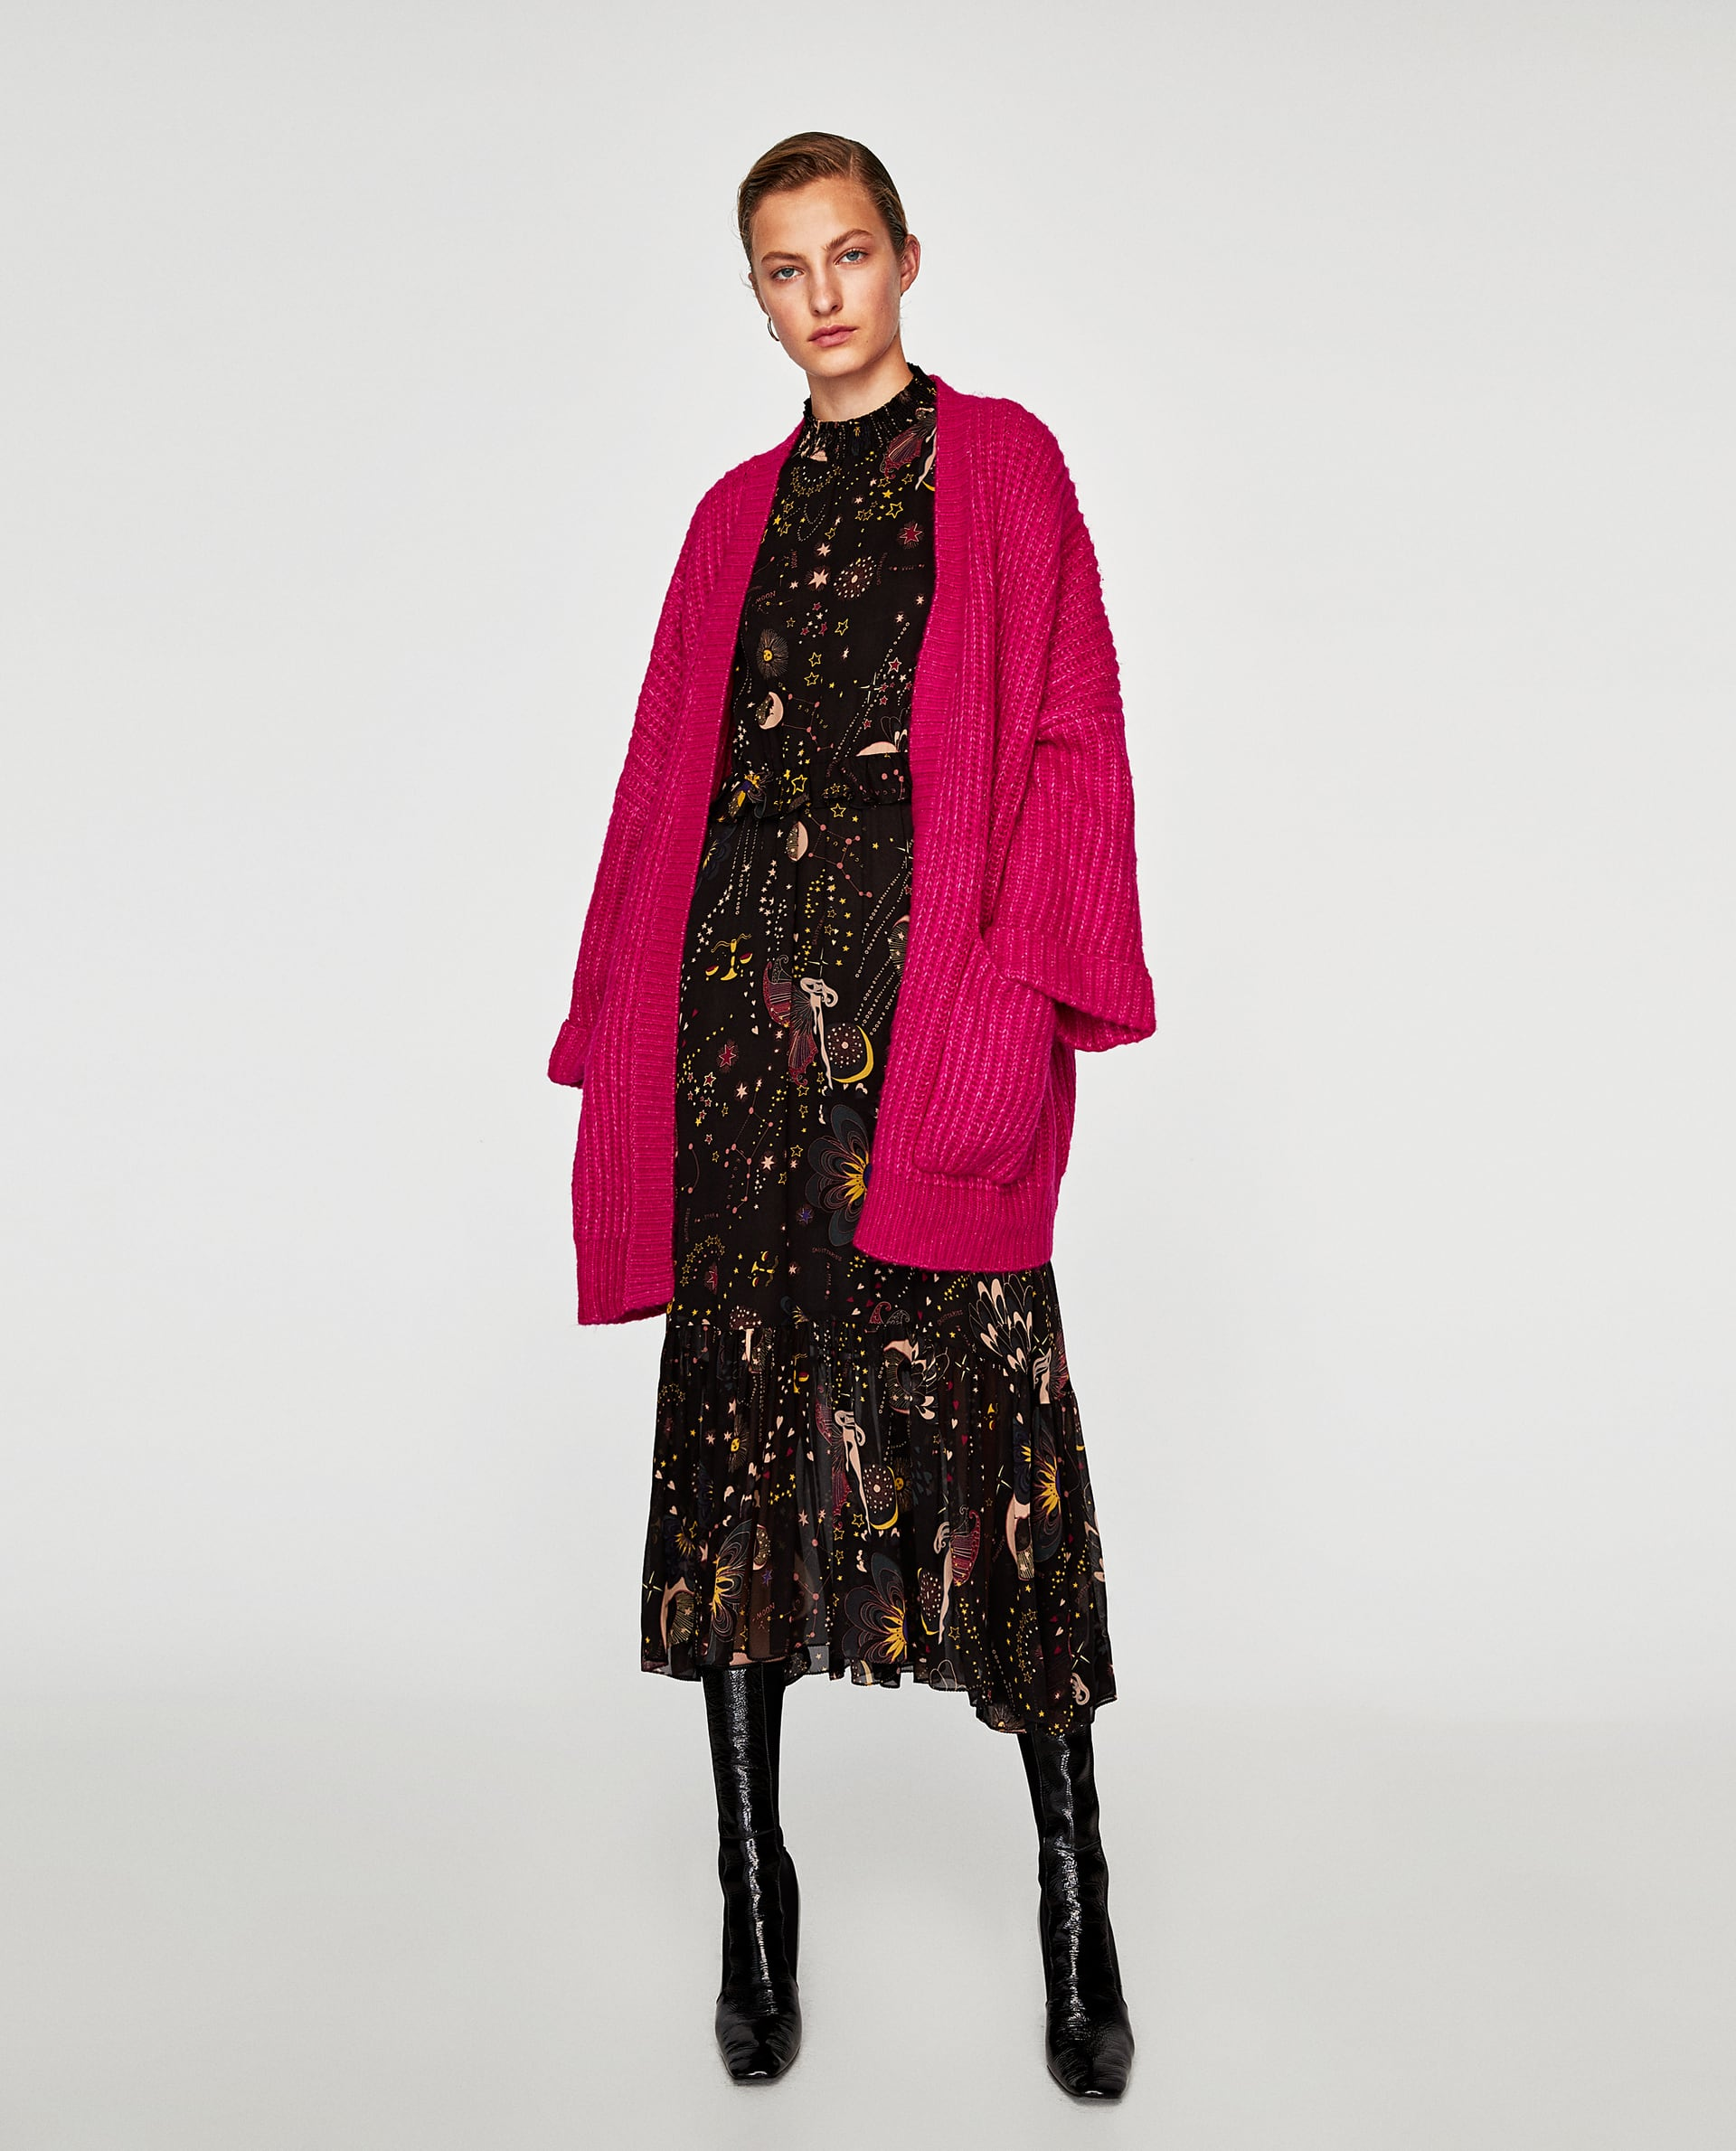 model wearing Zara Fuchsia Oversized Jacket, Printed Midi Dress and Square Toed High Heel Leather Ankle Boots